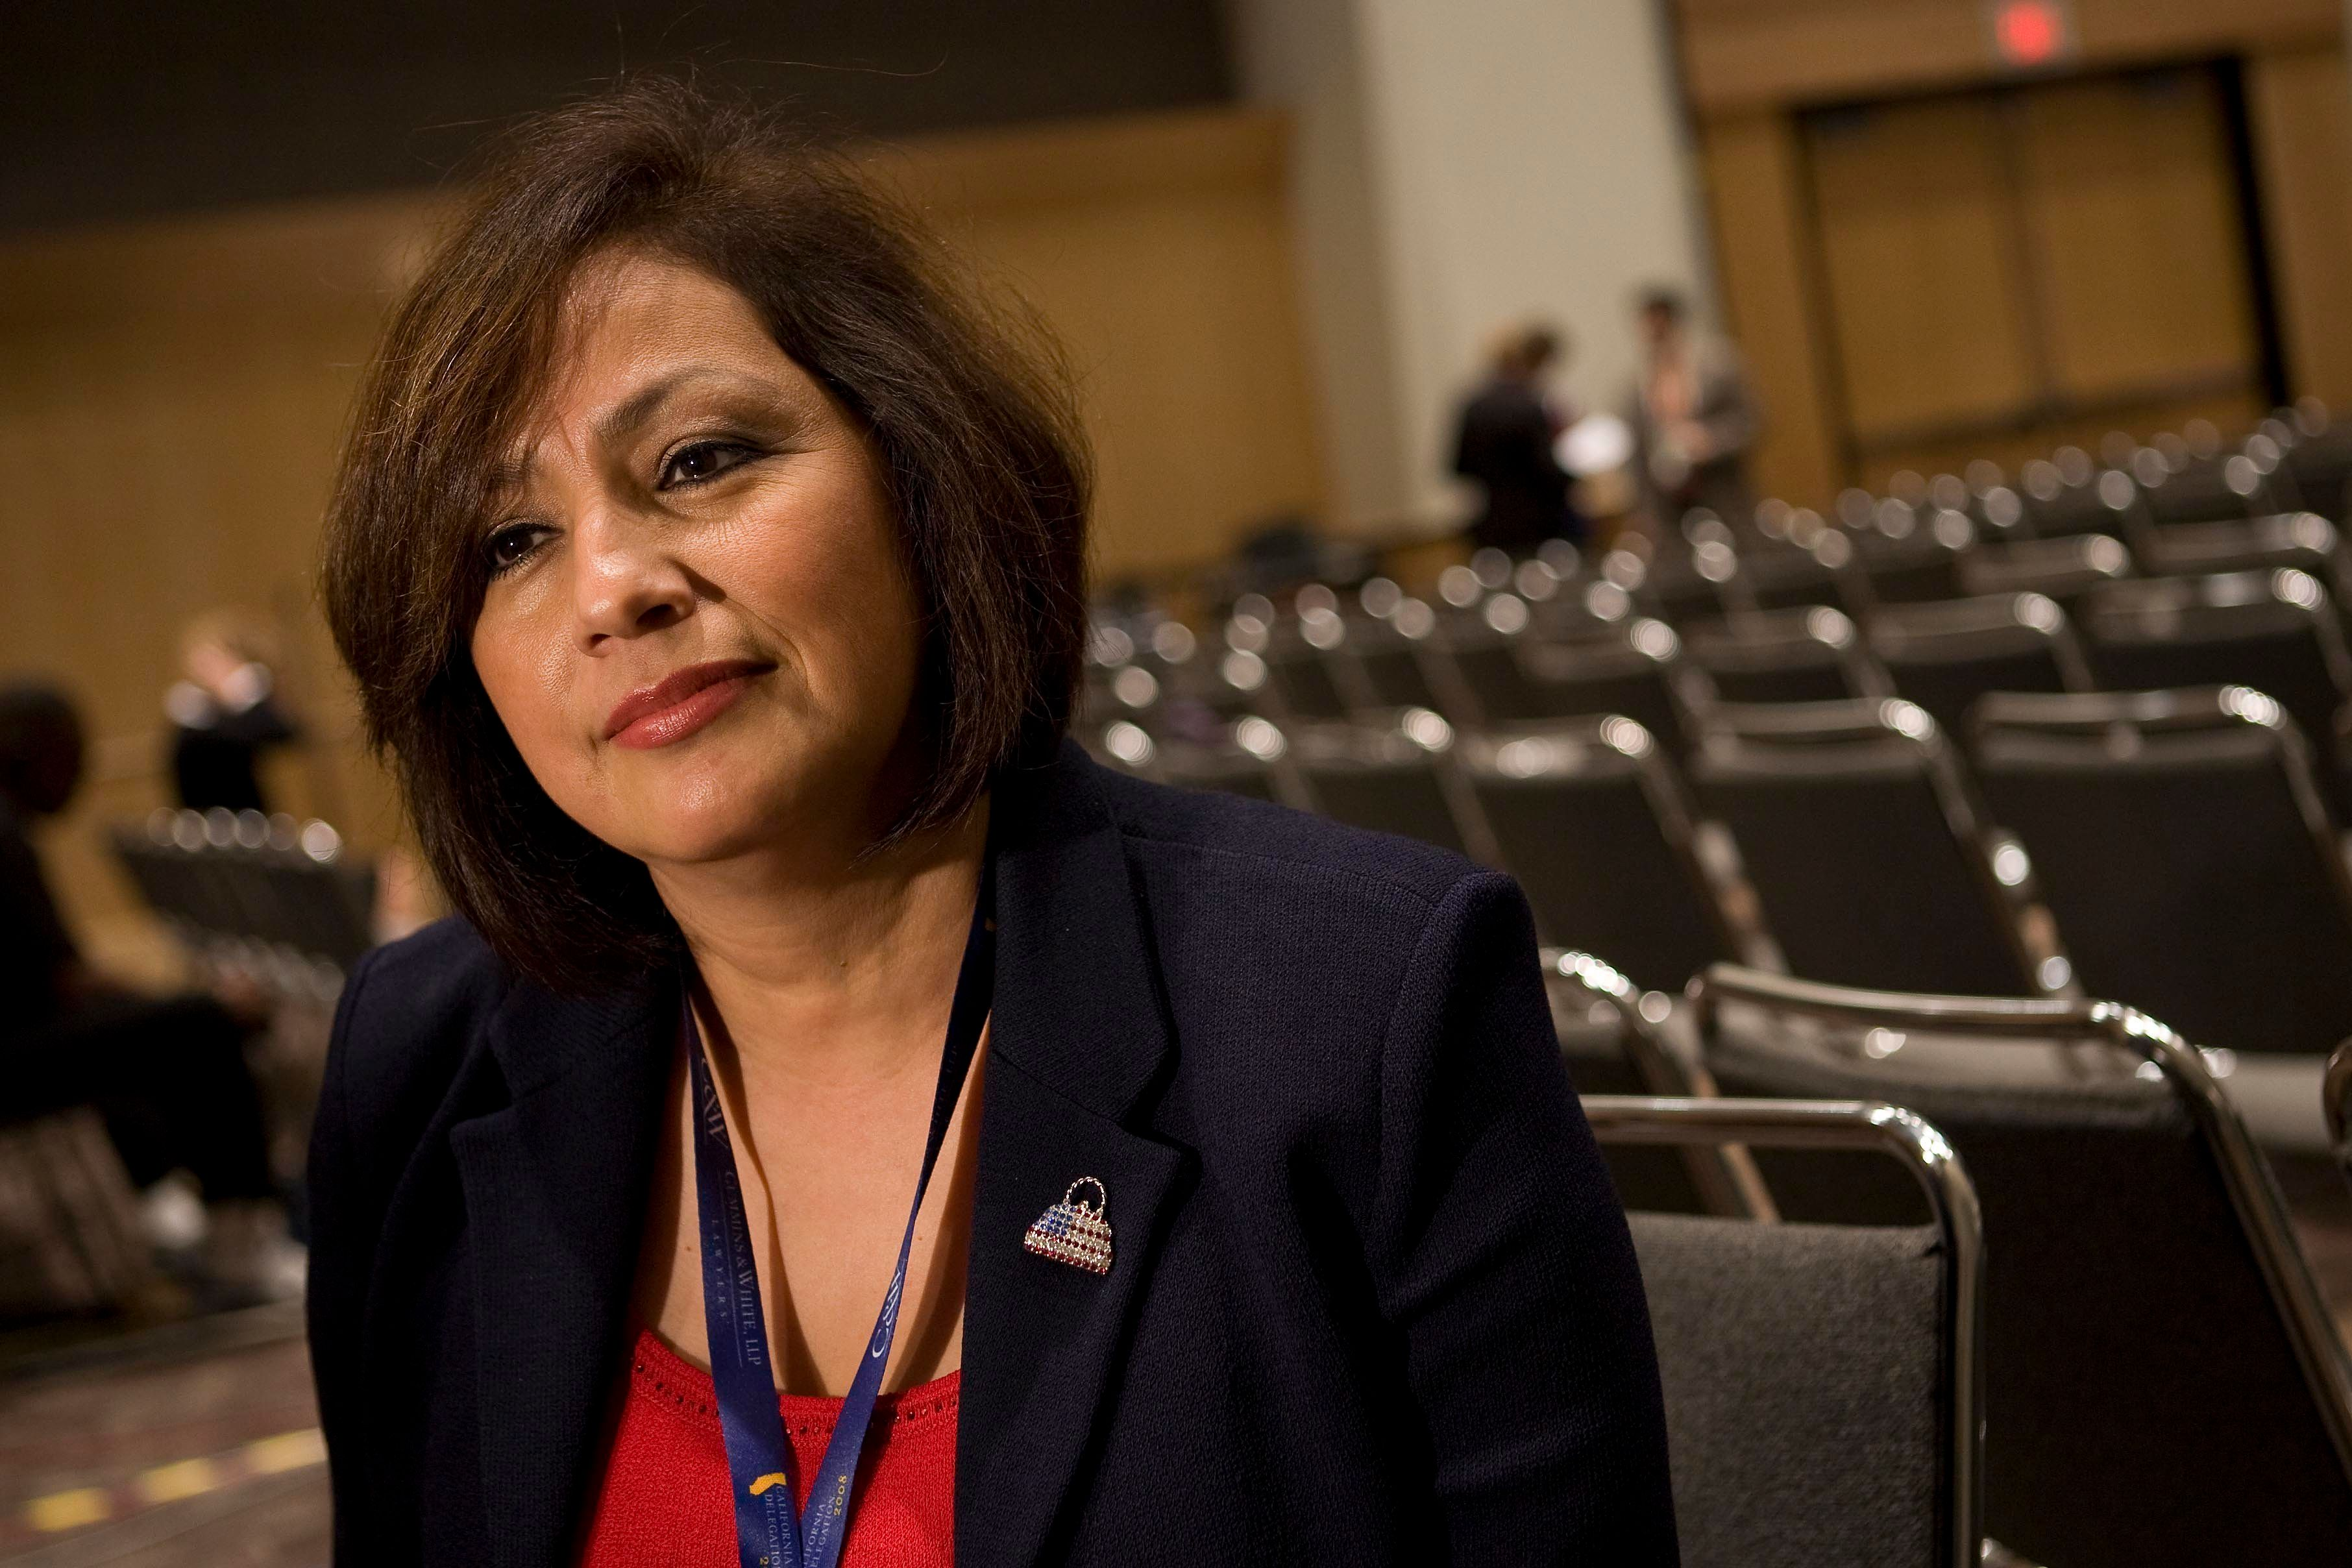 UNITED STATES - SEPTEMBER 03:  Rosario Marin, former U.S. treasurer, speaks during an interview before day three of the Republican National Convention (RNC) at the Xcel Energy Center in St. Paul, Minnesota, U.S., on Wednesday, Sept. 3, 2008. The RNC will run until Sept. 4.  (Photo by Joshua Roberts/Bloomberg via Getty Images)